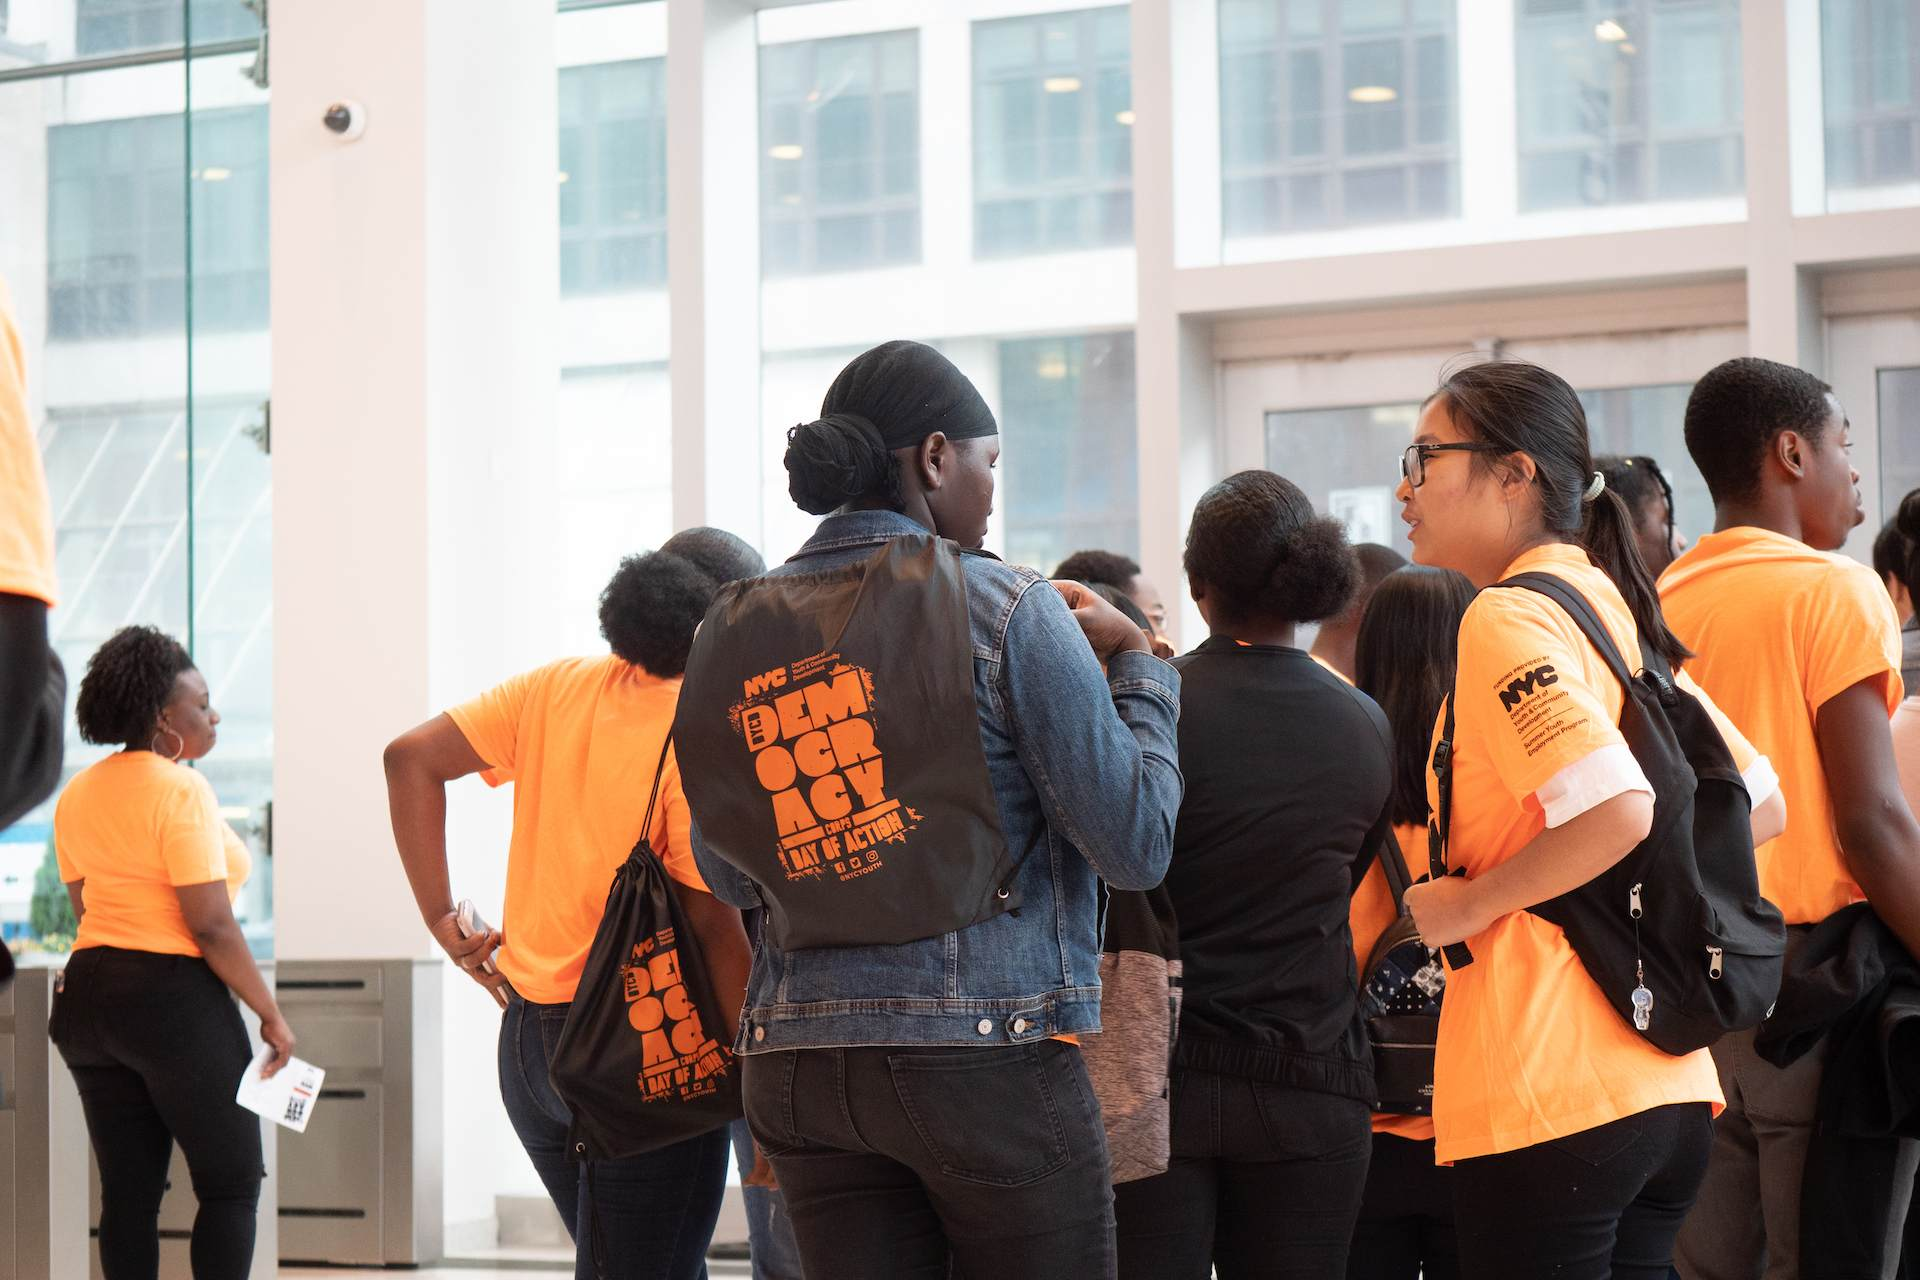 A group of youth participants socializing while wearing black and orange branded Democracy Corps apparel.